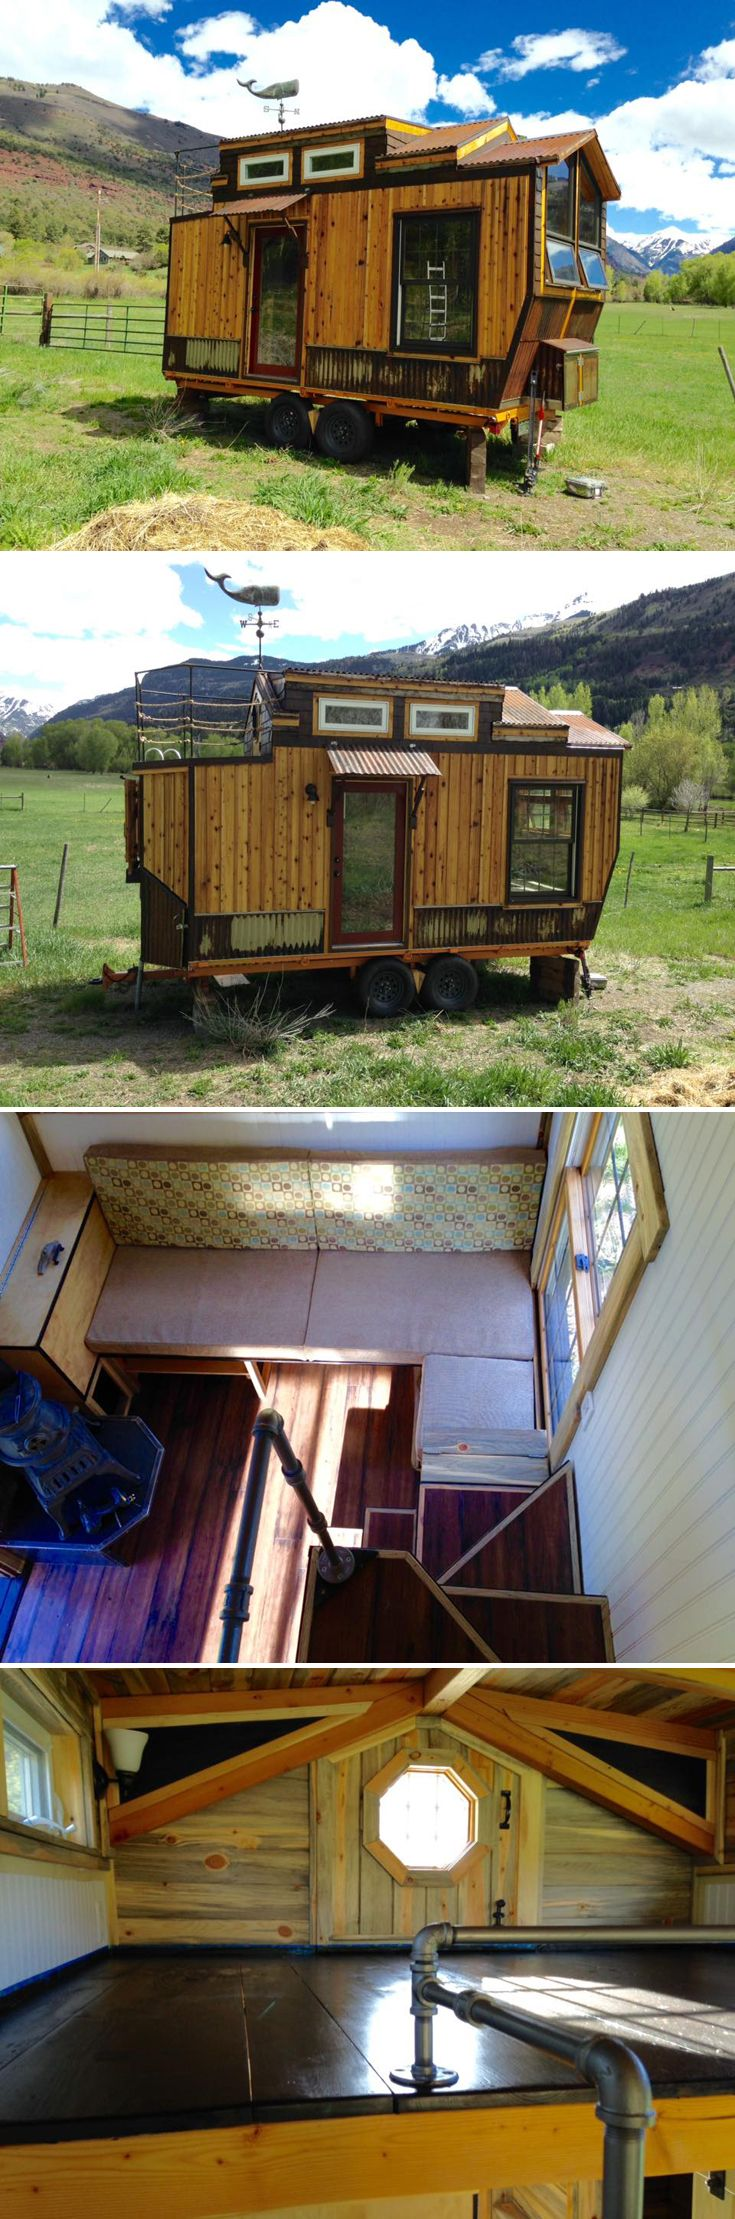 Badezimmer ideen 5x8  best mobile living images on pinterest  campers mobile home